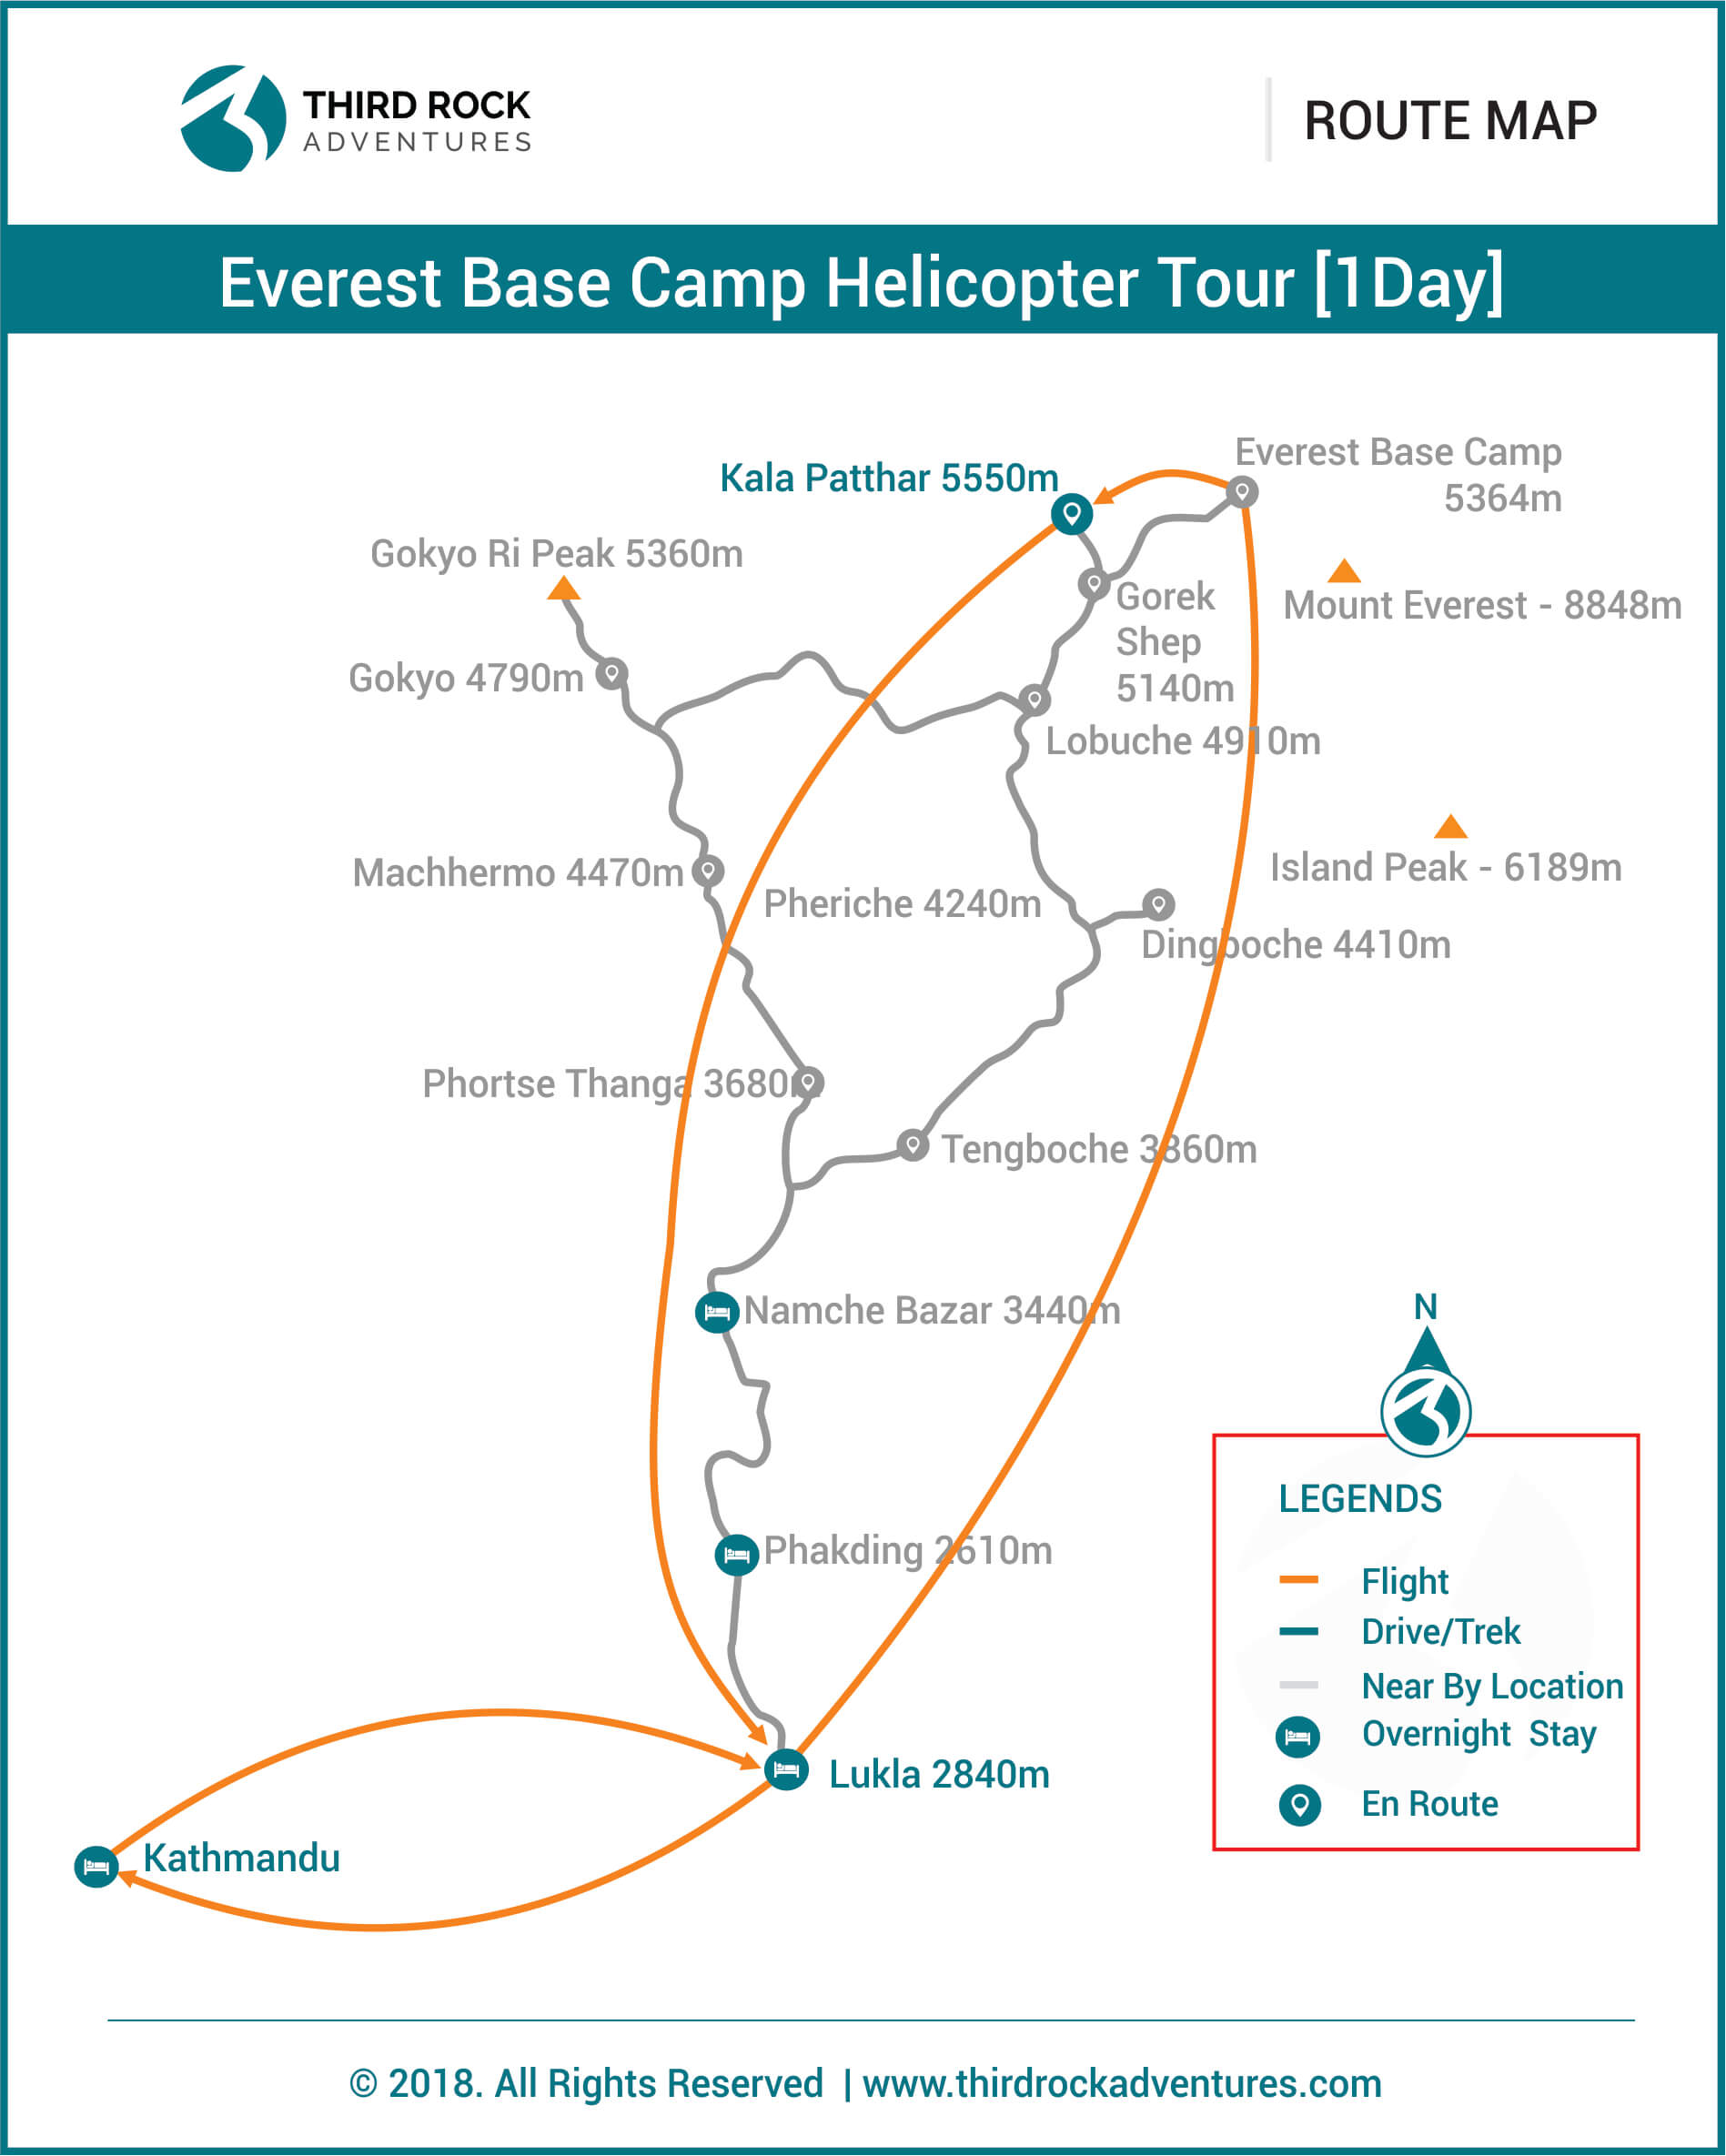 Everest Base Camp Helicopter Tour 1 day Route Map